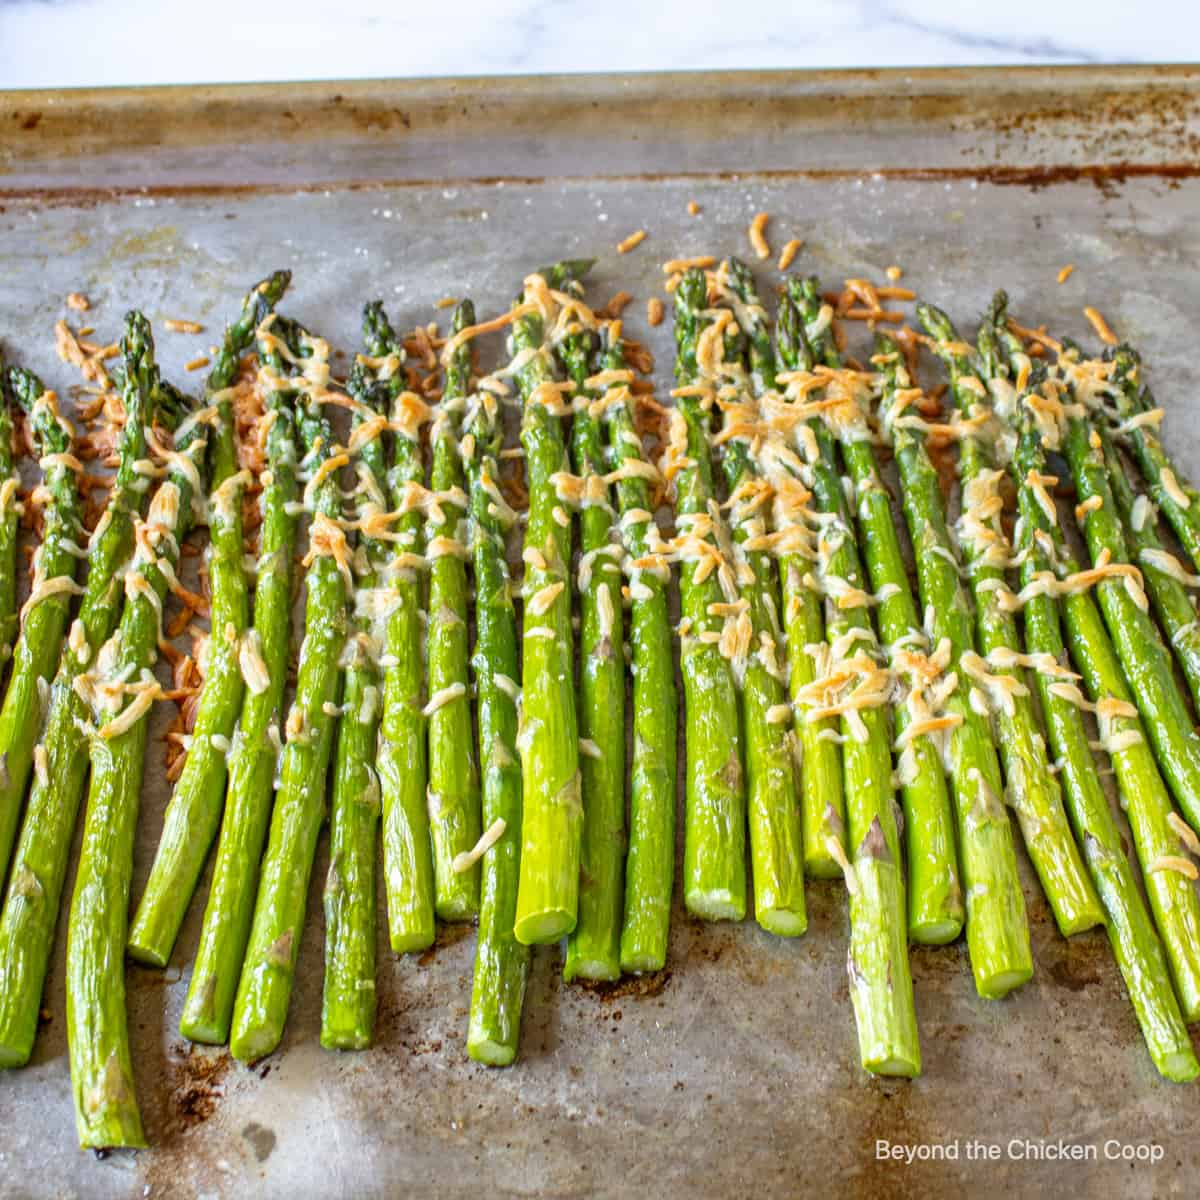 A baking sheet filled with asparagus topped with parmesan cheese.